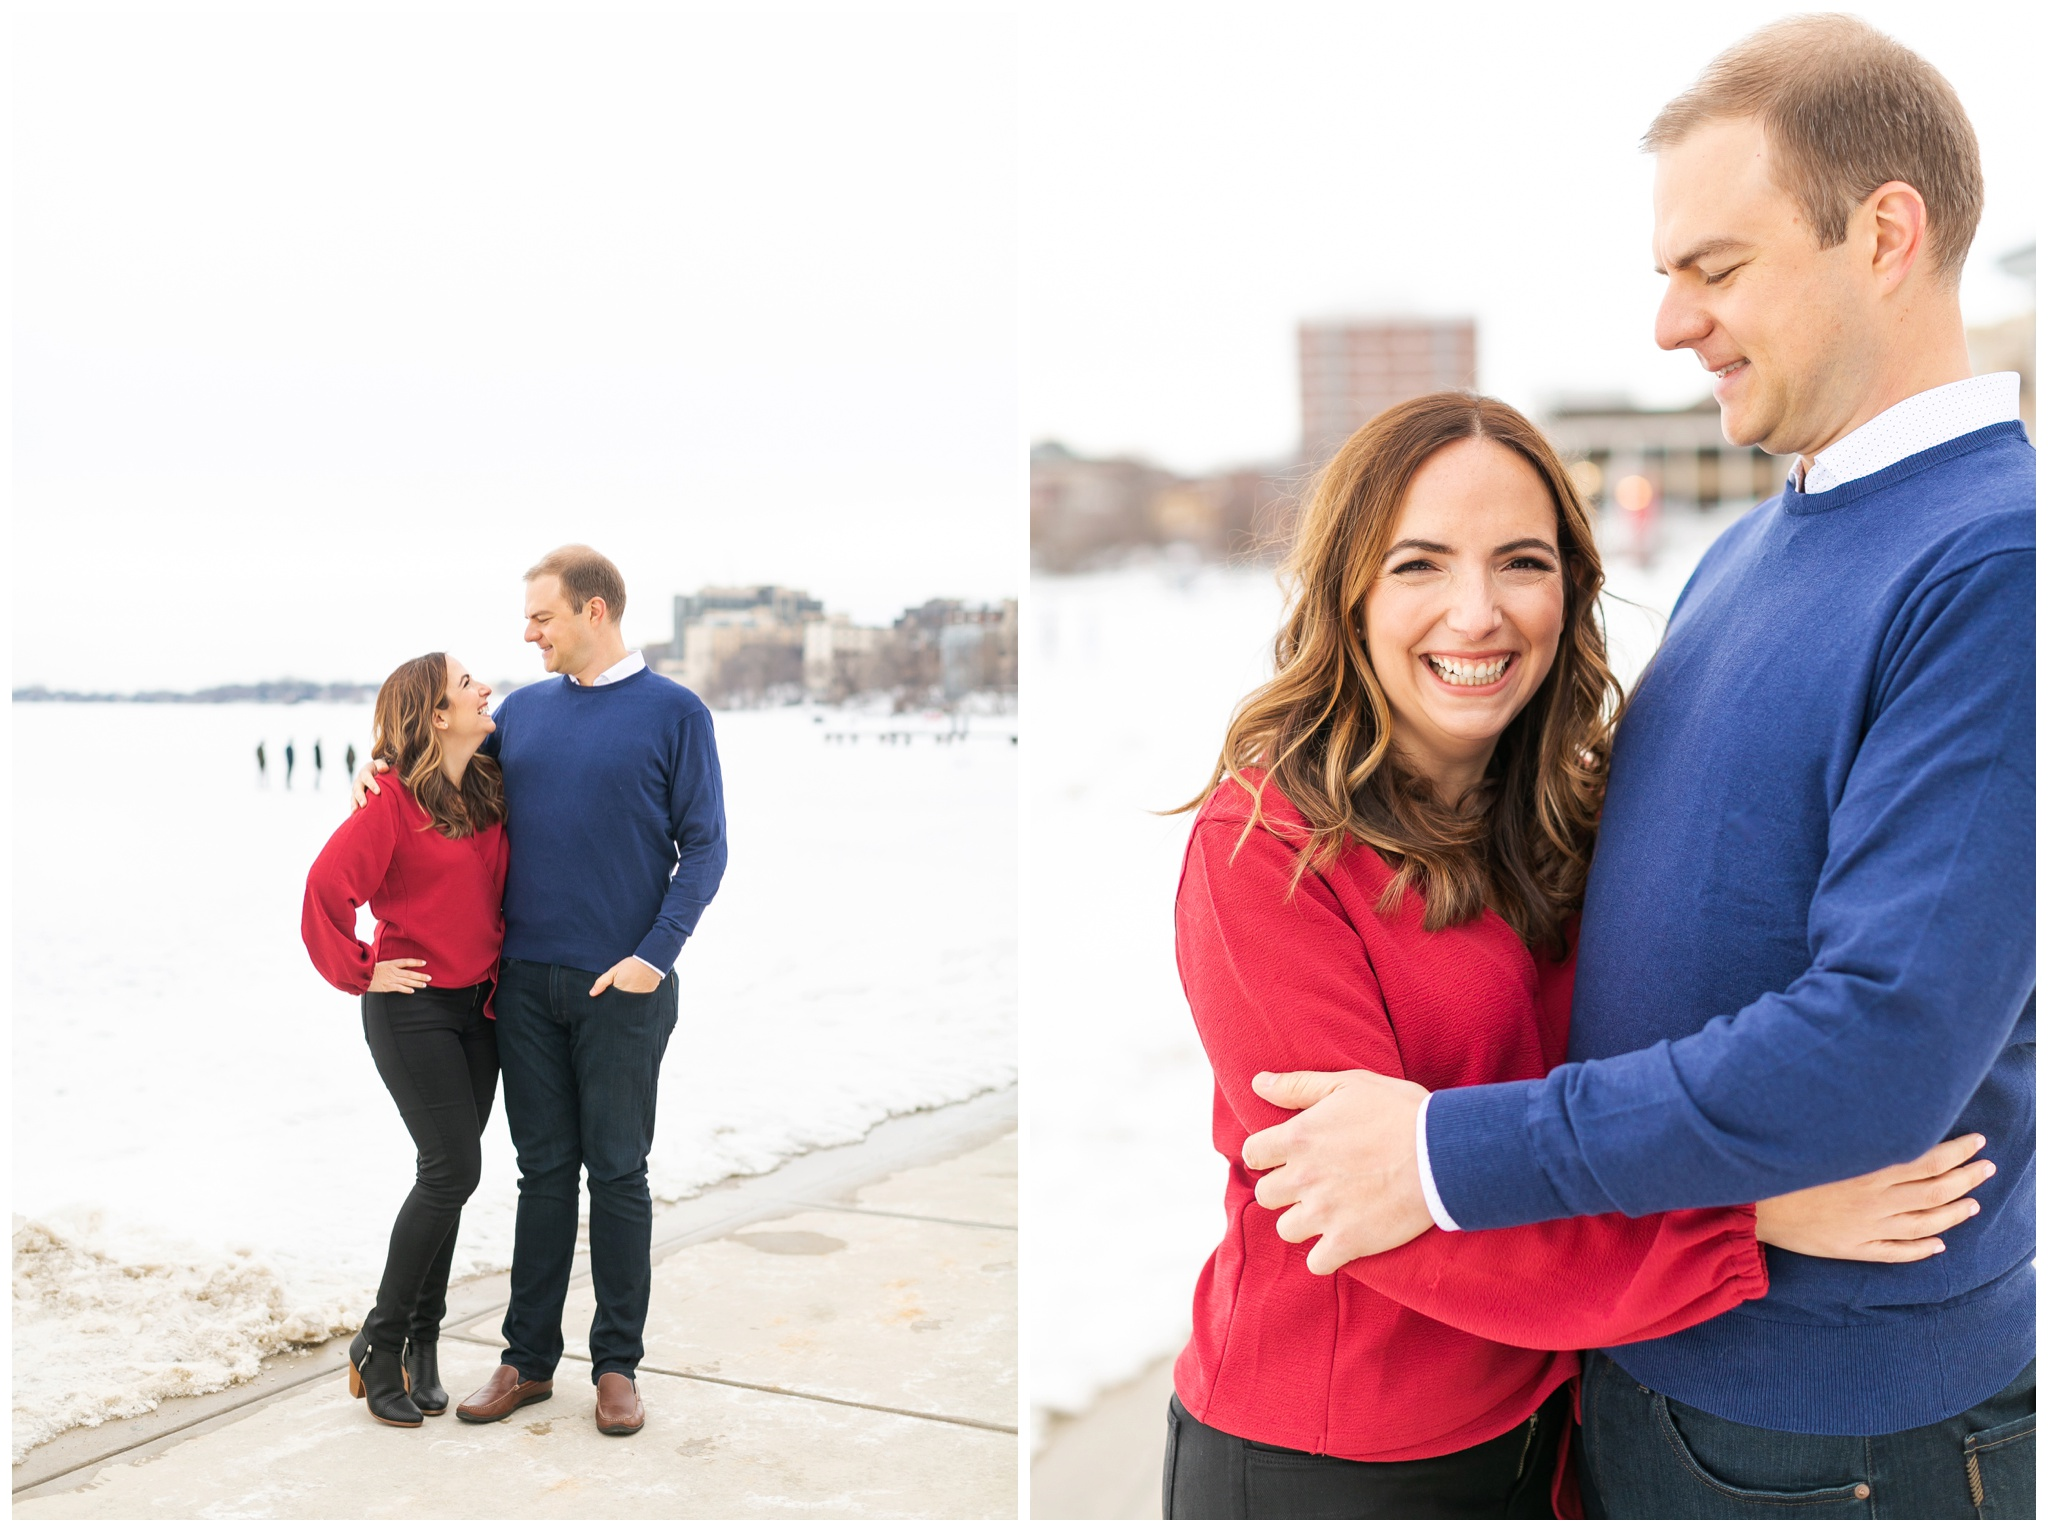 Memorial_Union_engagement_session_caynay_photo_2885.jpg